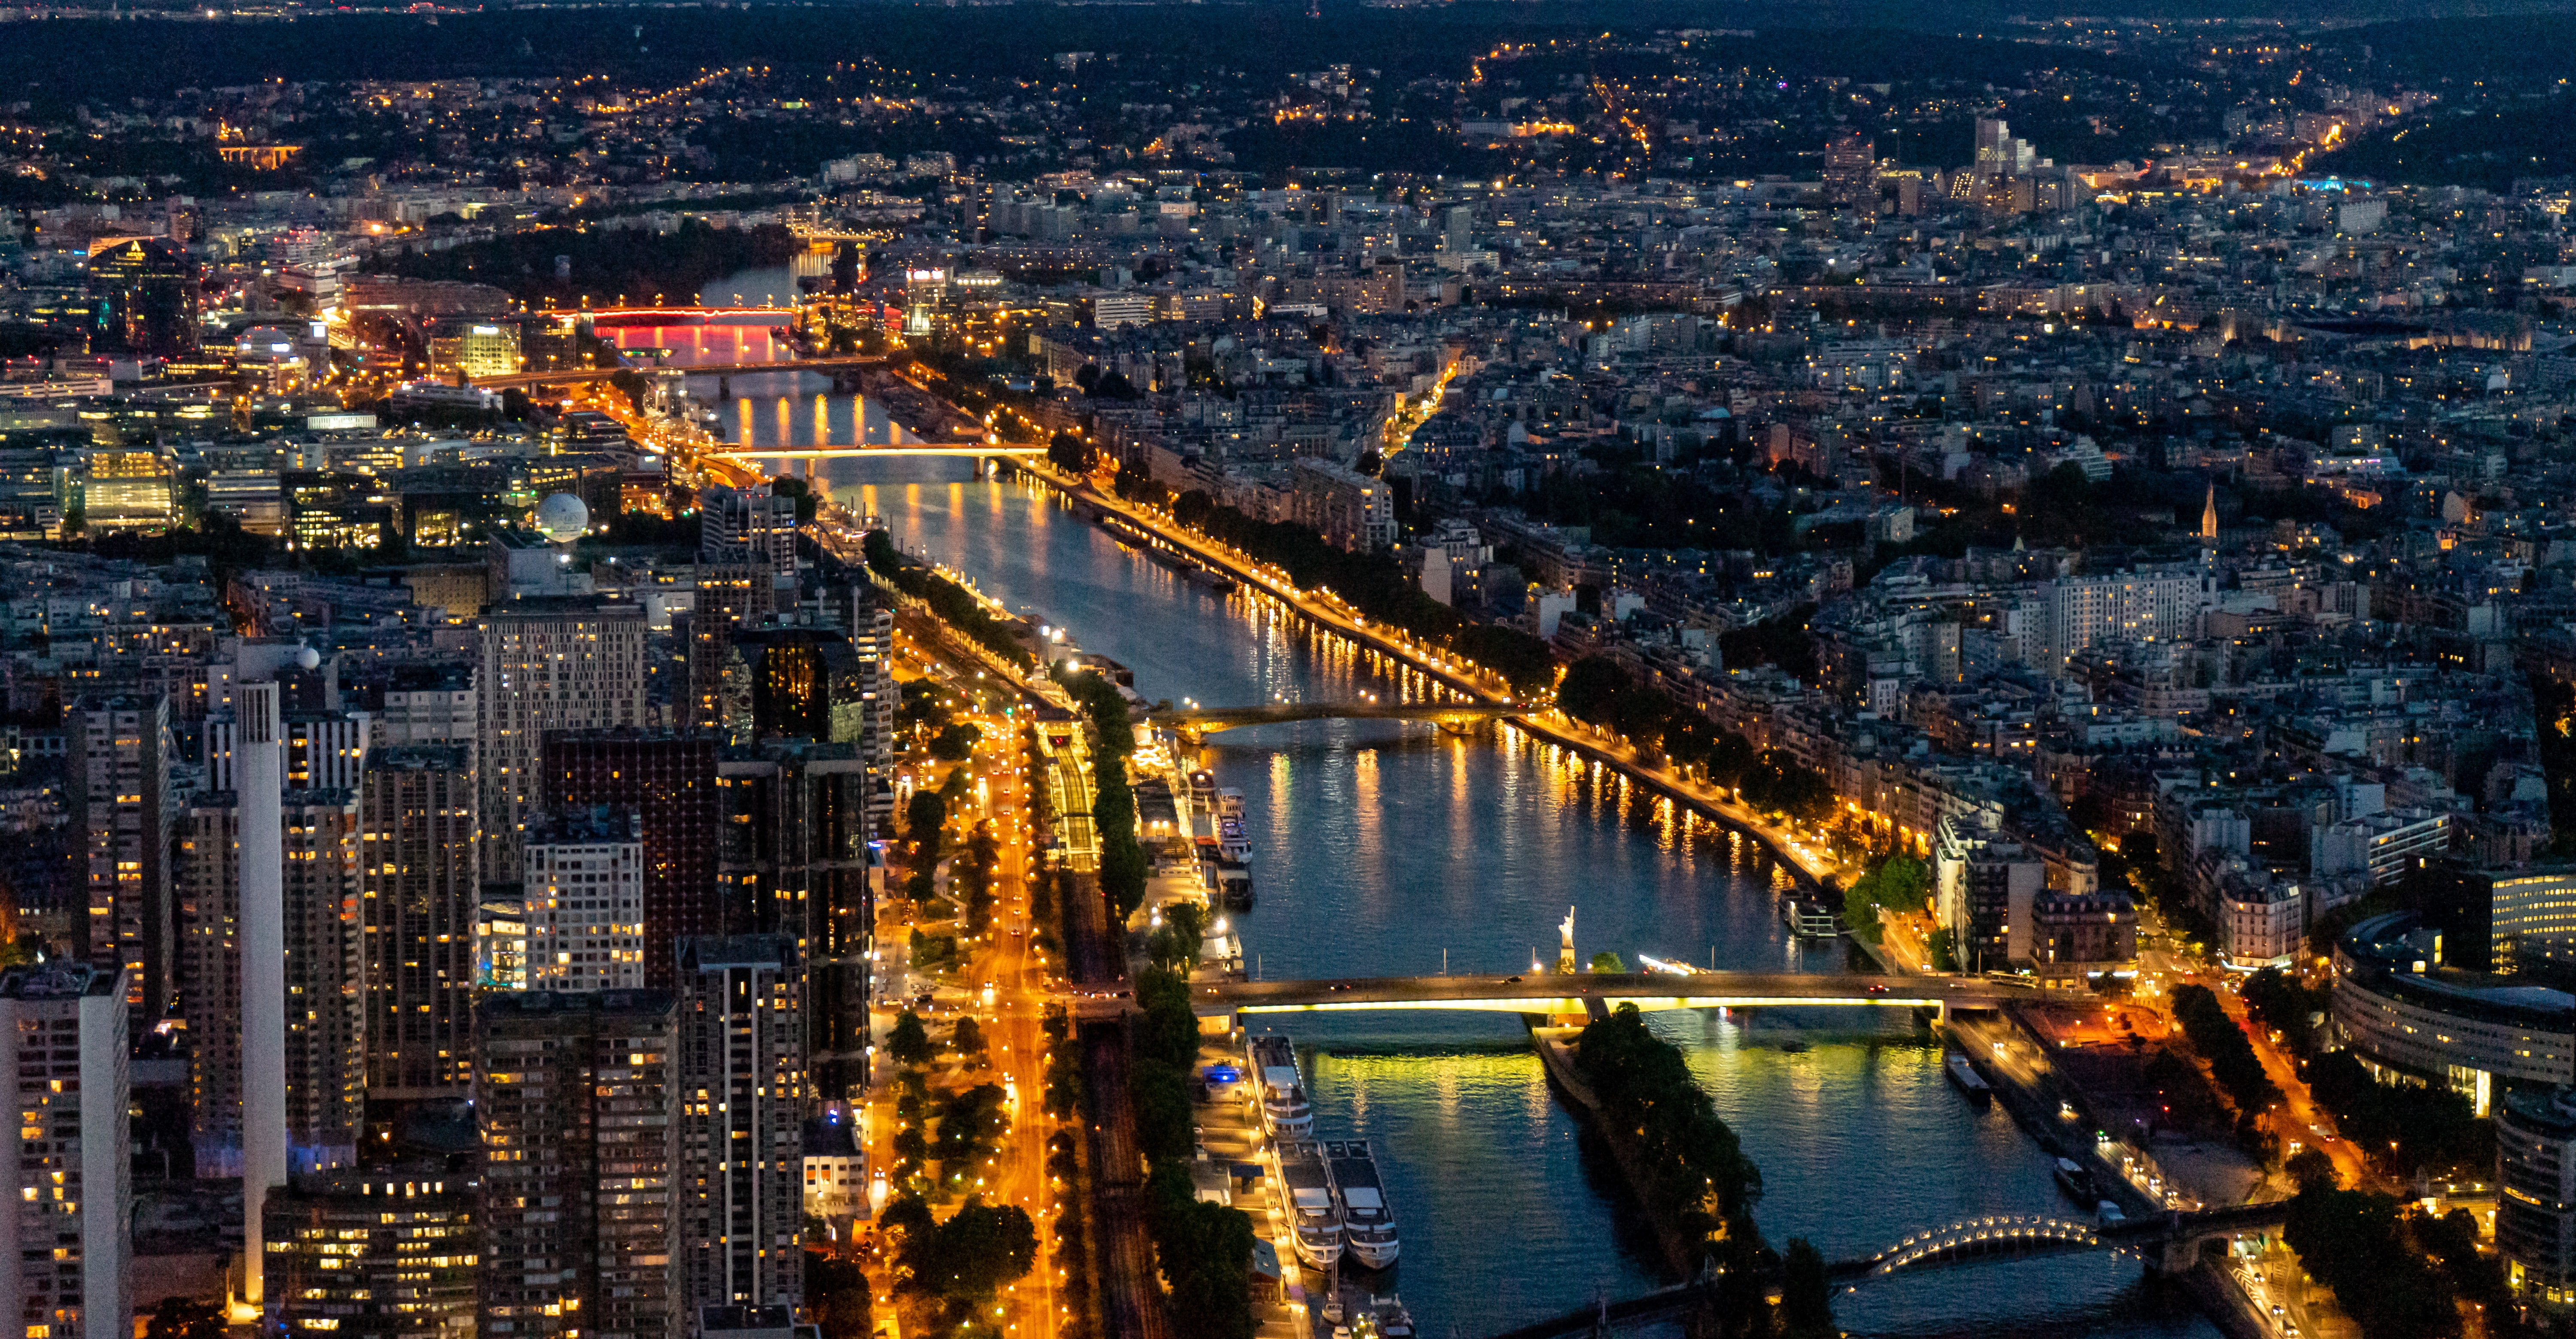 156782 download wallpaper Cities, Bridges, City, Building, Lights, Night City screensavers and pictures for free